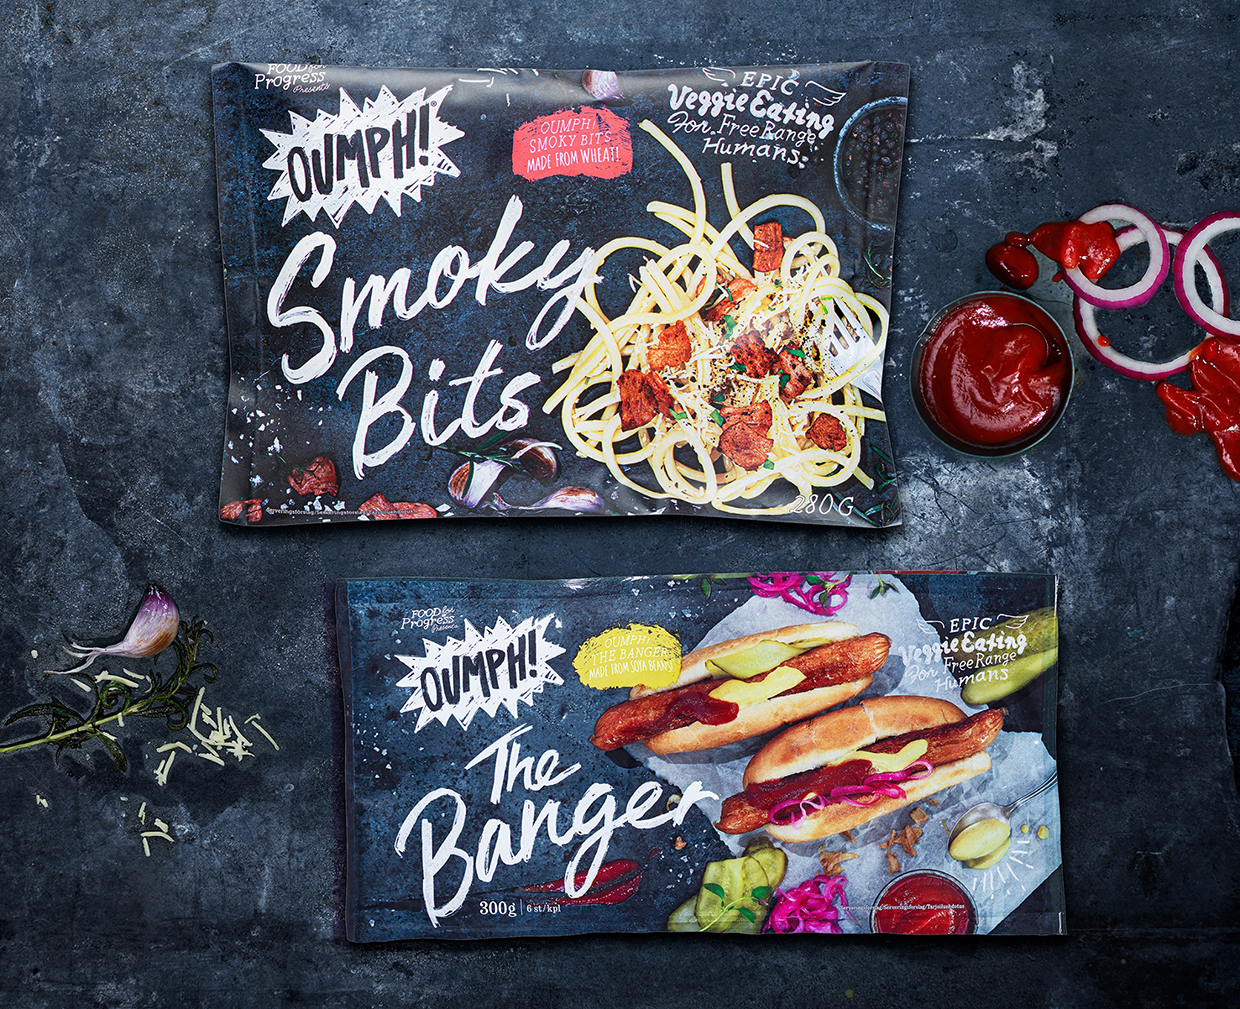 Oumph! launches smoky bacon-style bits and sausages in Sweden